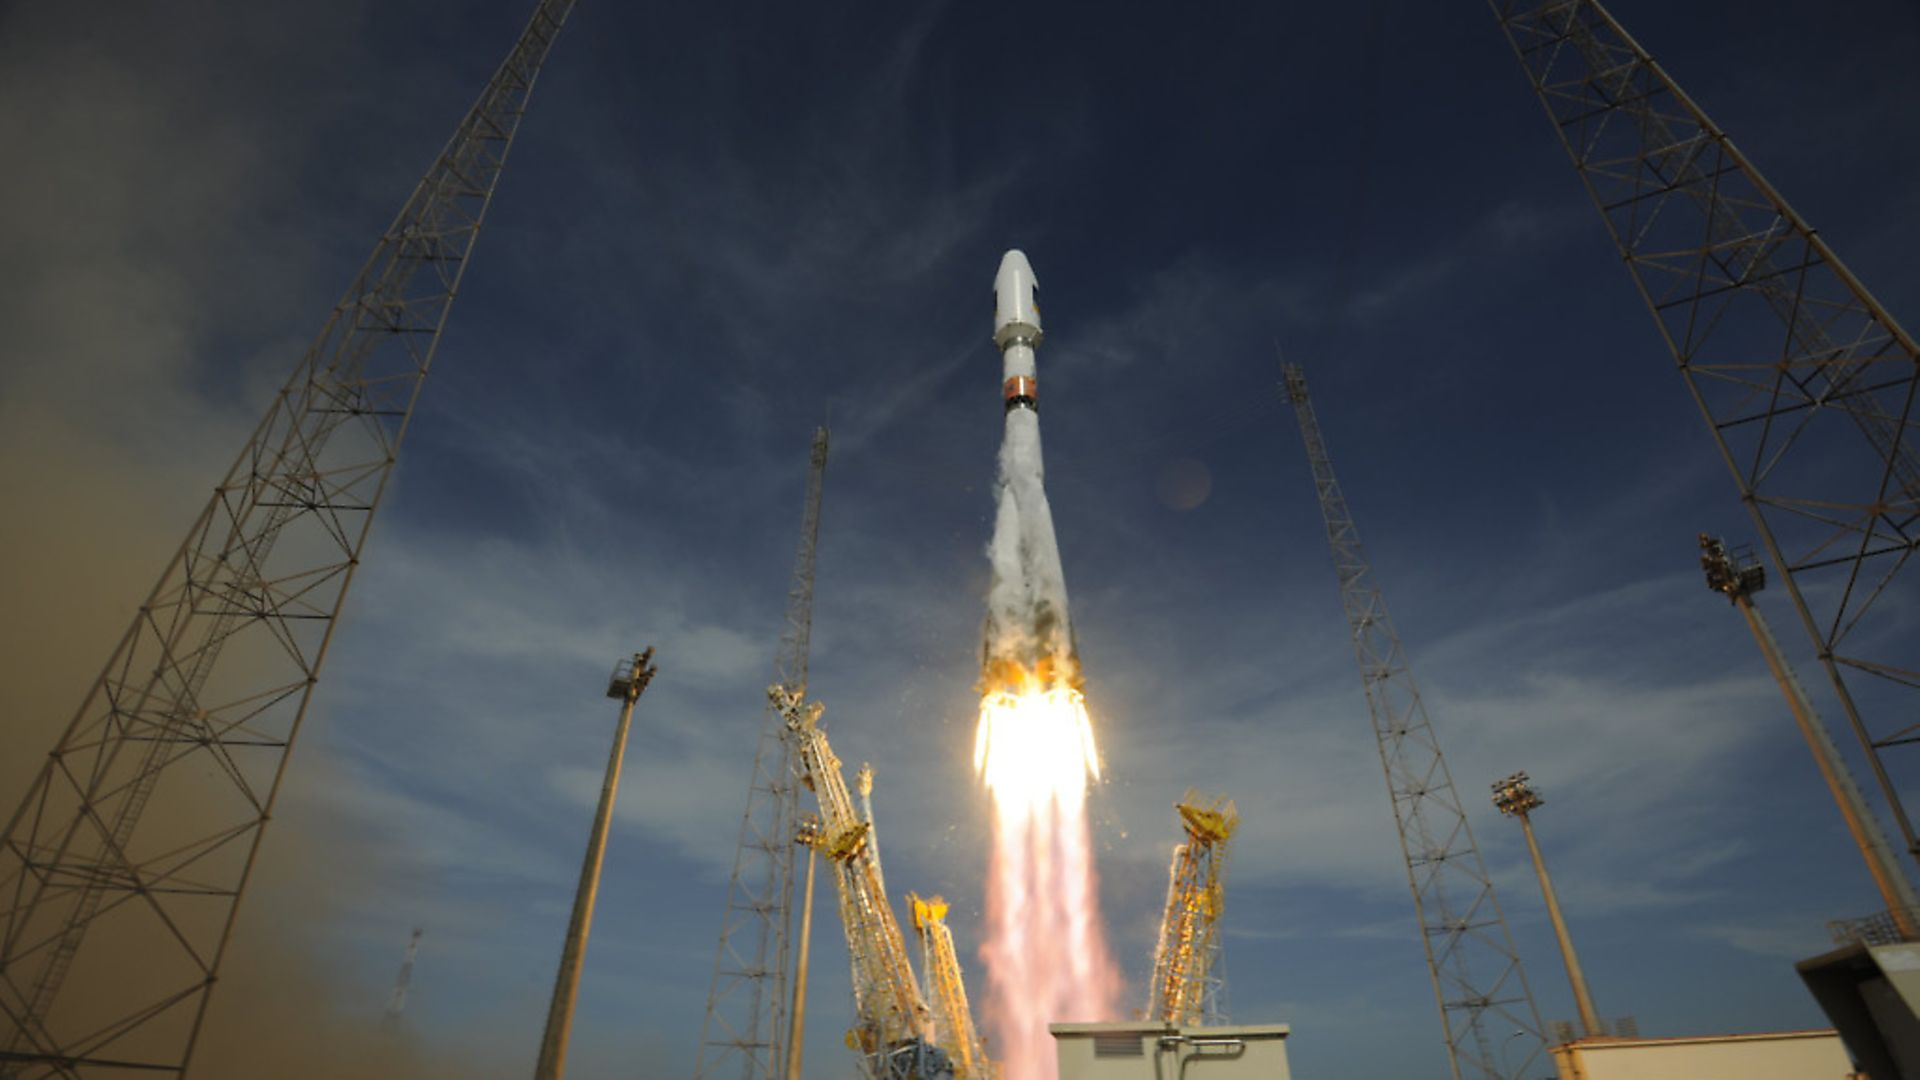 Second Galileo IOV launch on carrying the second two Galileo In-Orbit Validation satellites FM3 and FM4, by Soyuz from French Guiana. Photo: ESA - Credit: Archant